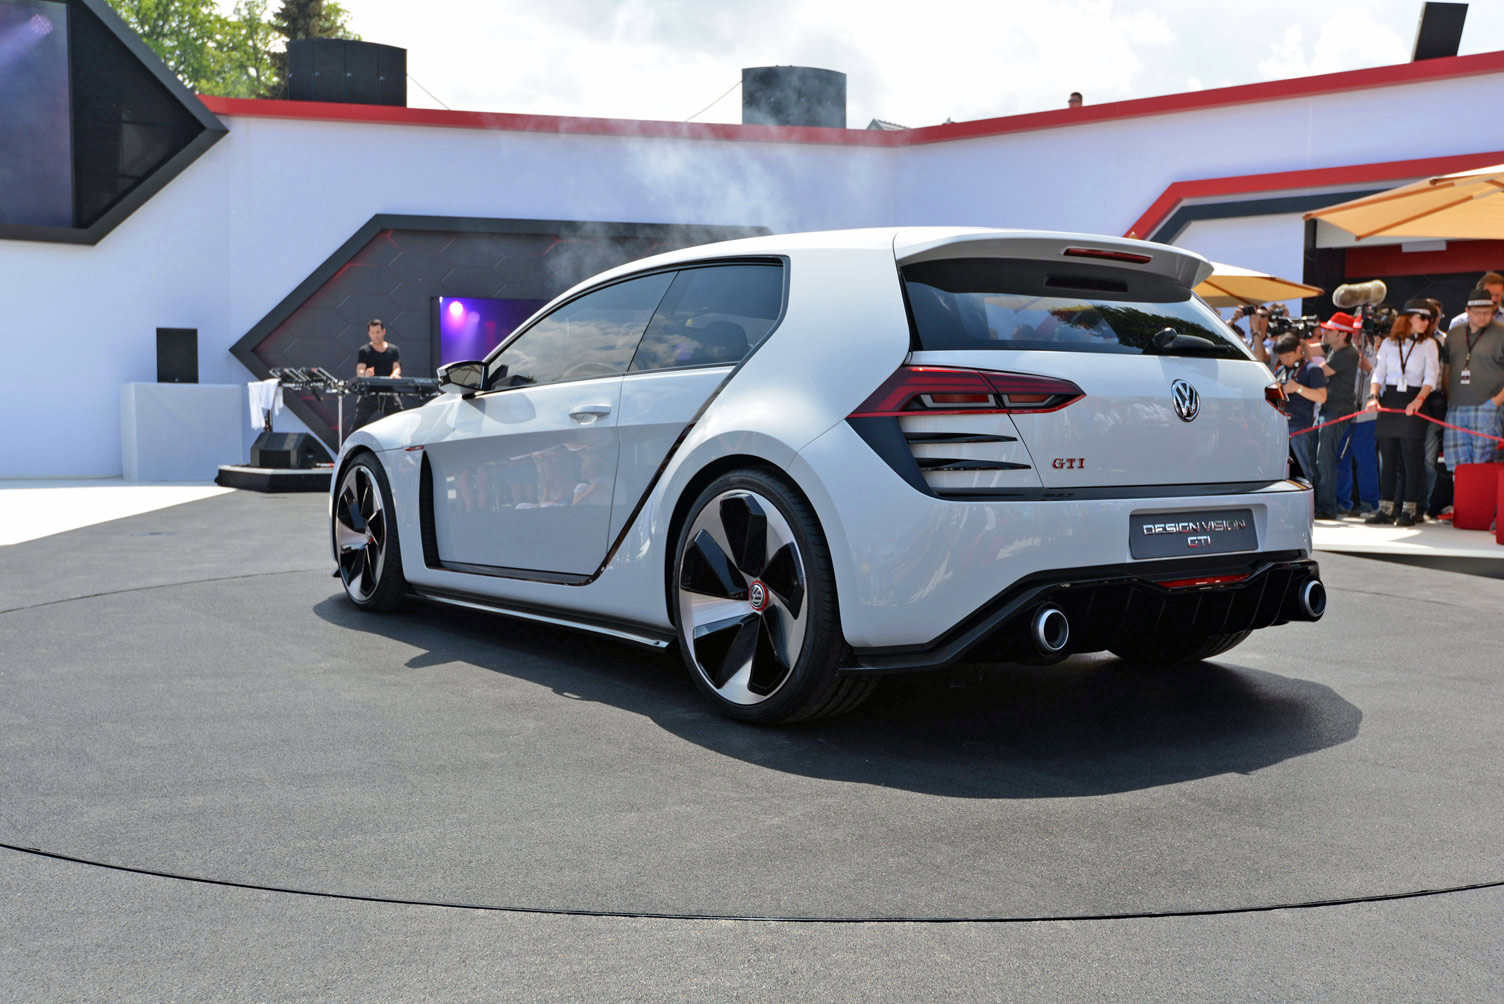 volkswagen-design-vision-gti-worthersee-022